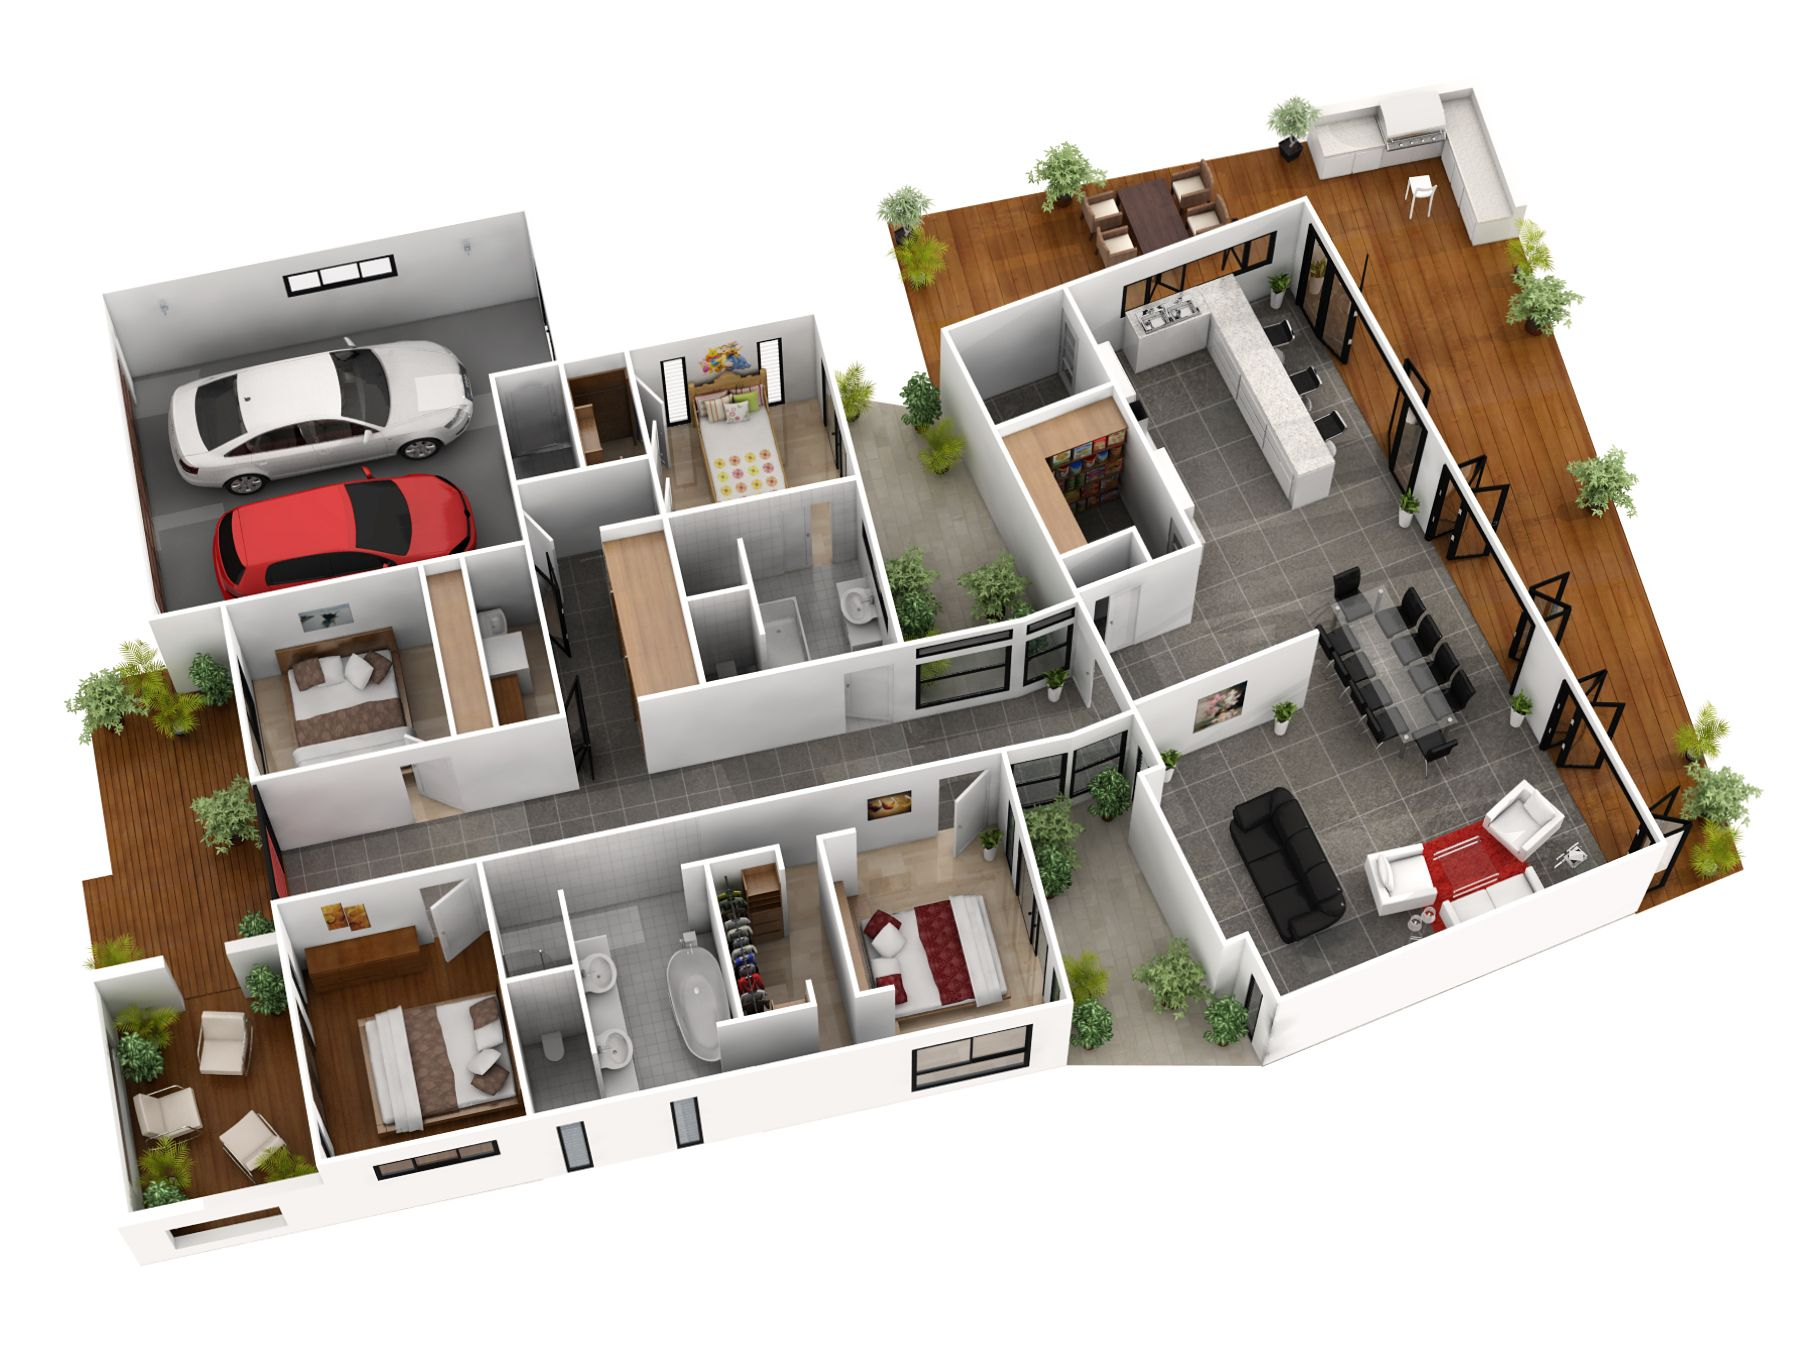 3d gallery artist impressions 3d architectural for Plan rendering ideas